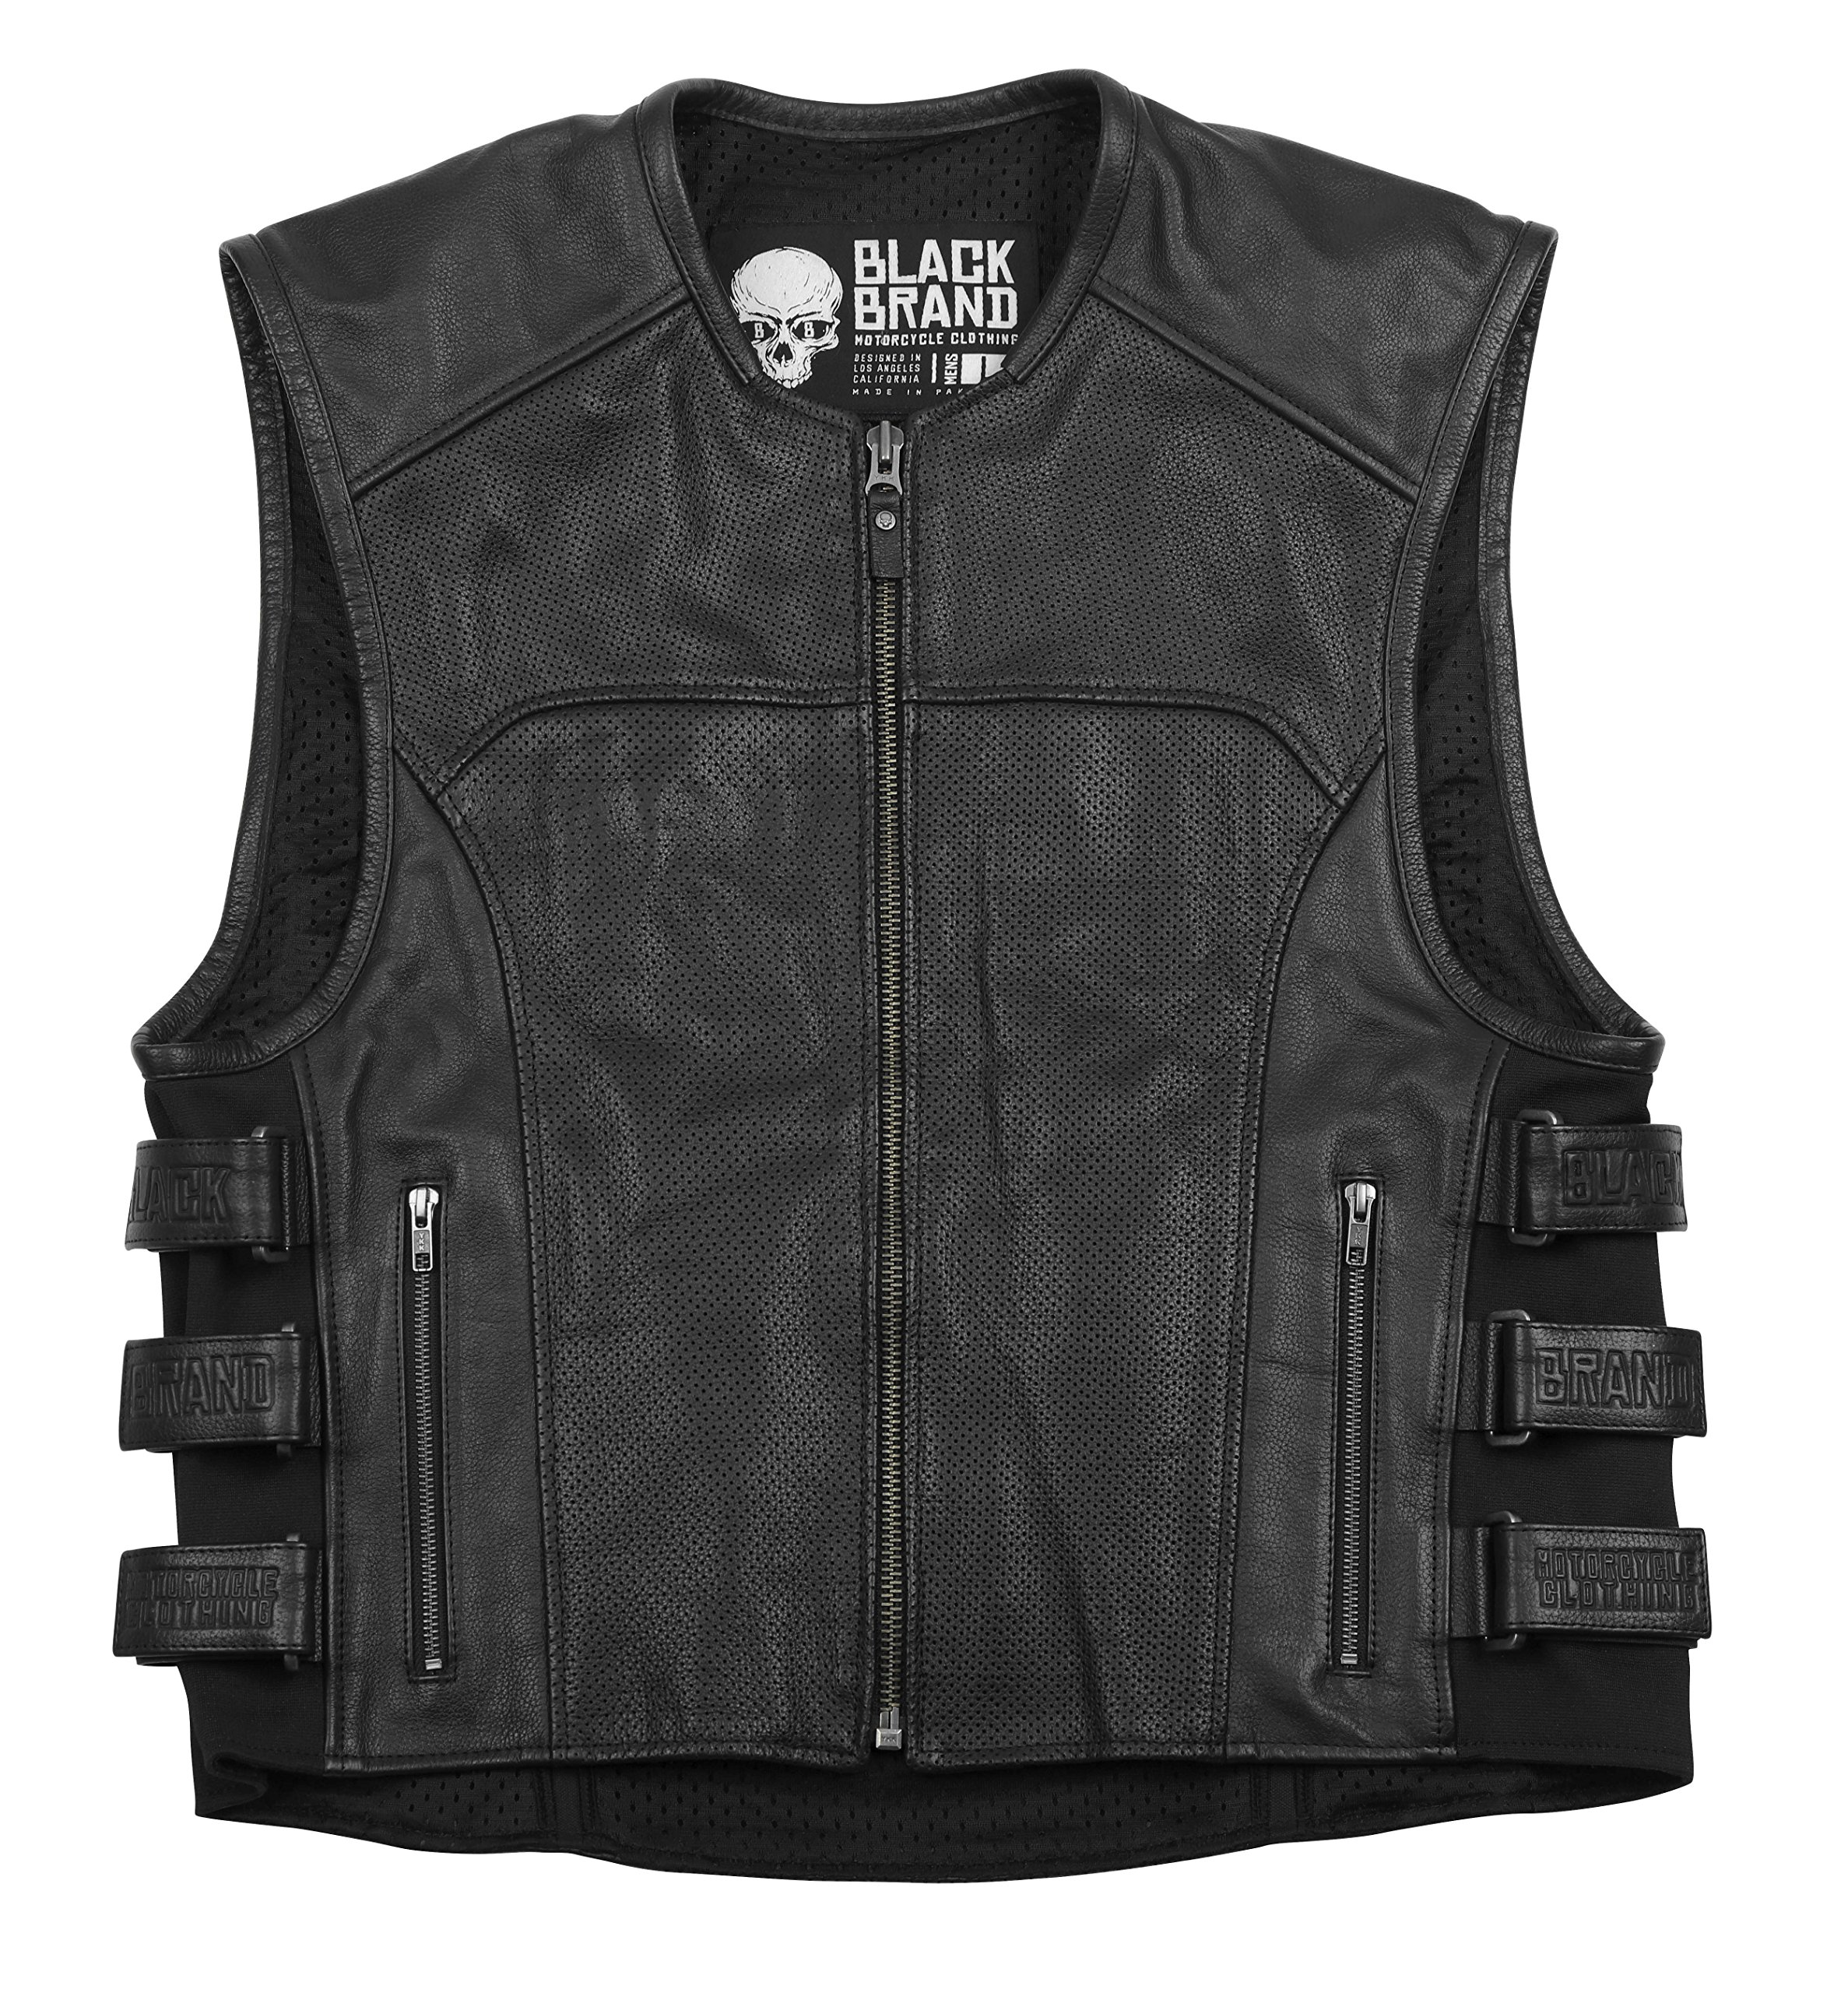 Black Brand Men's Leather Ice Pick Perforated KoolTeK Motorcycle Vest (Black, 4X-Large)